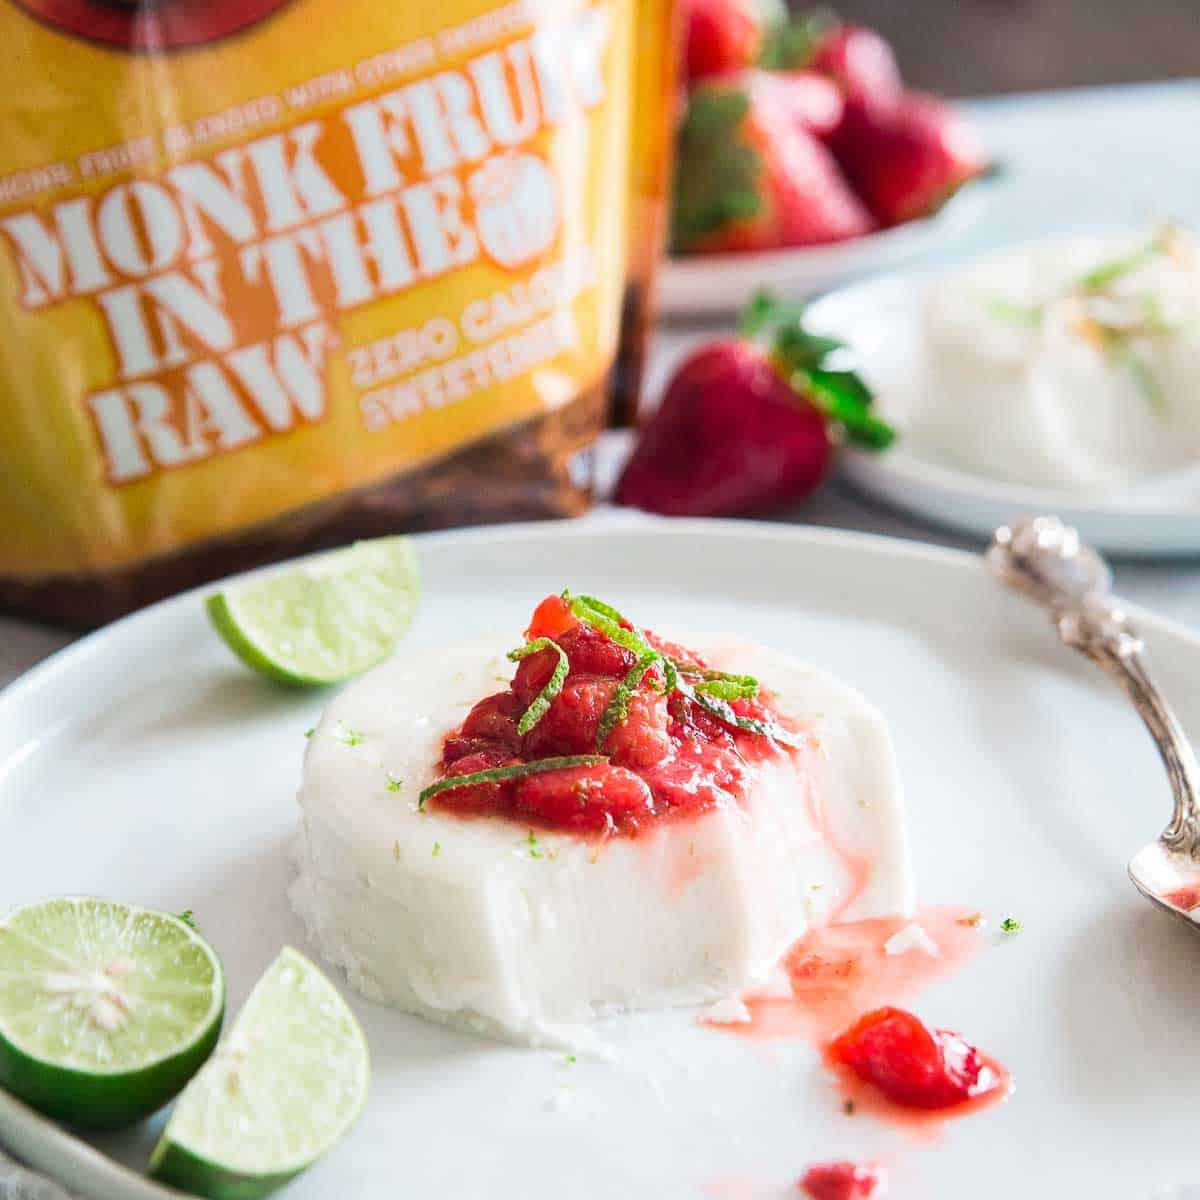 Sweetened with monk fruit in the raw, this coconut panna cotta is low-carb and dairy free yet just as delicious as the classic cream based recipe.